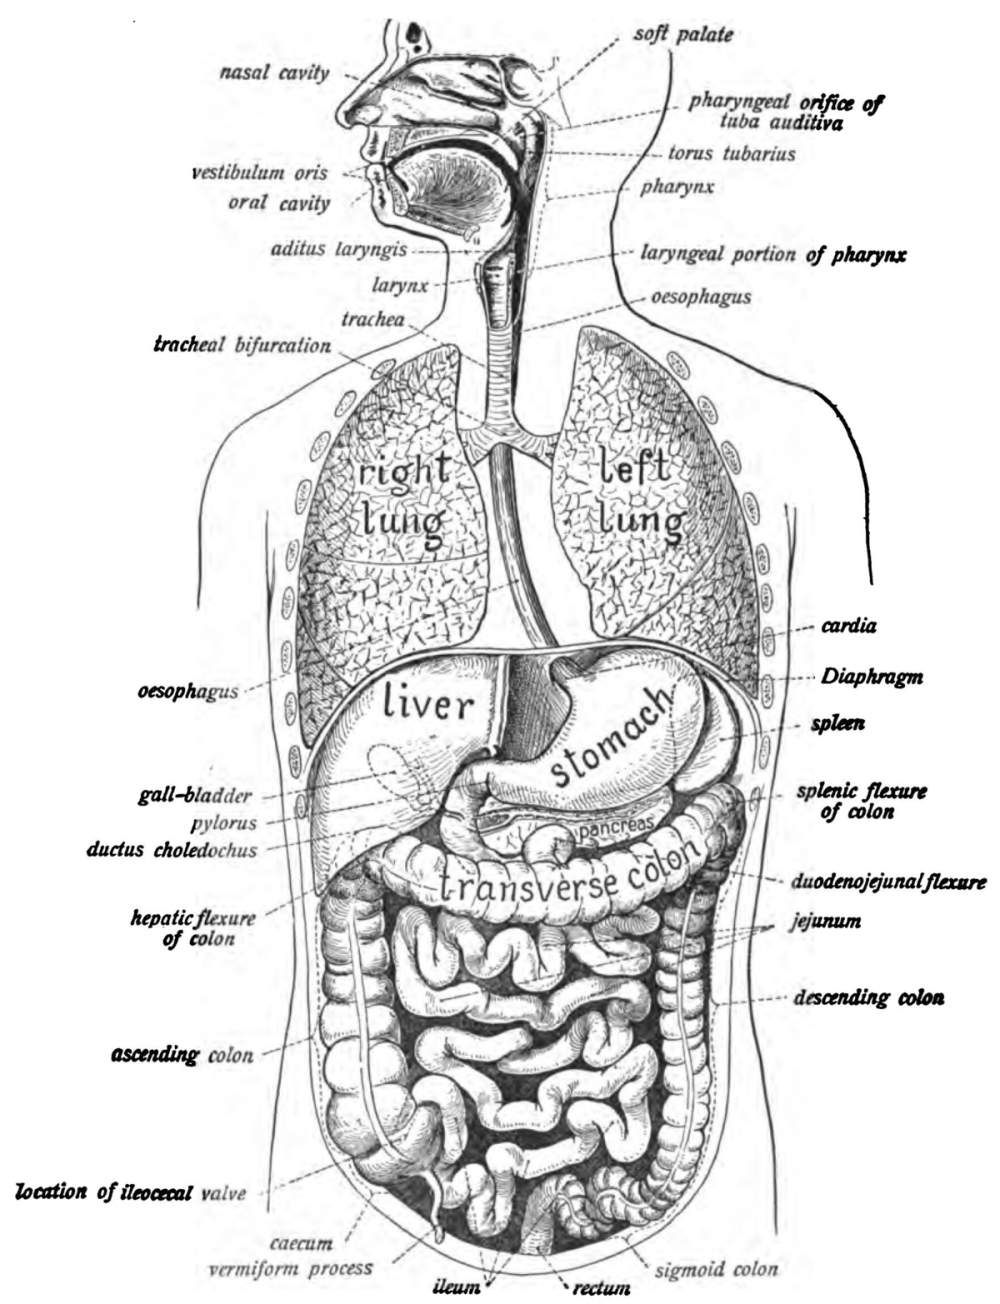 medium resolution of human digestive system wikipedia rh en wikipedia org how the respiratory system works teachers labeled diagram respiratory system